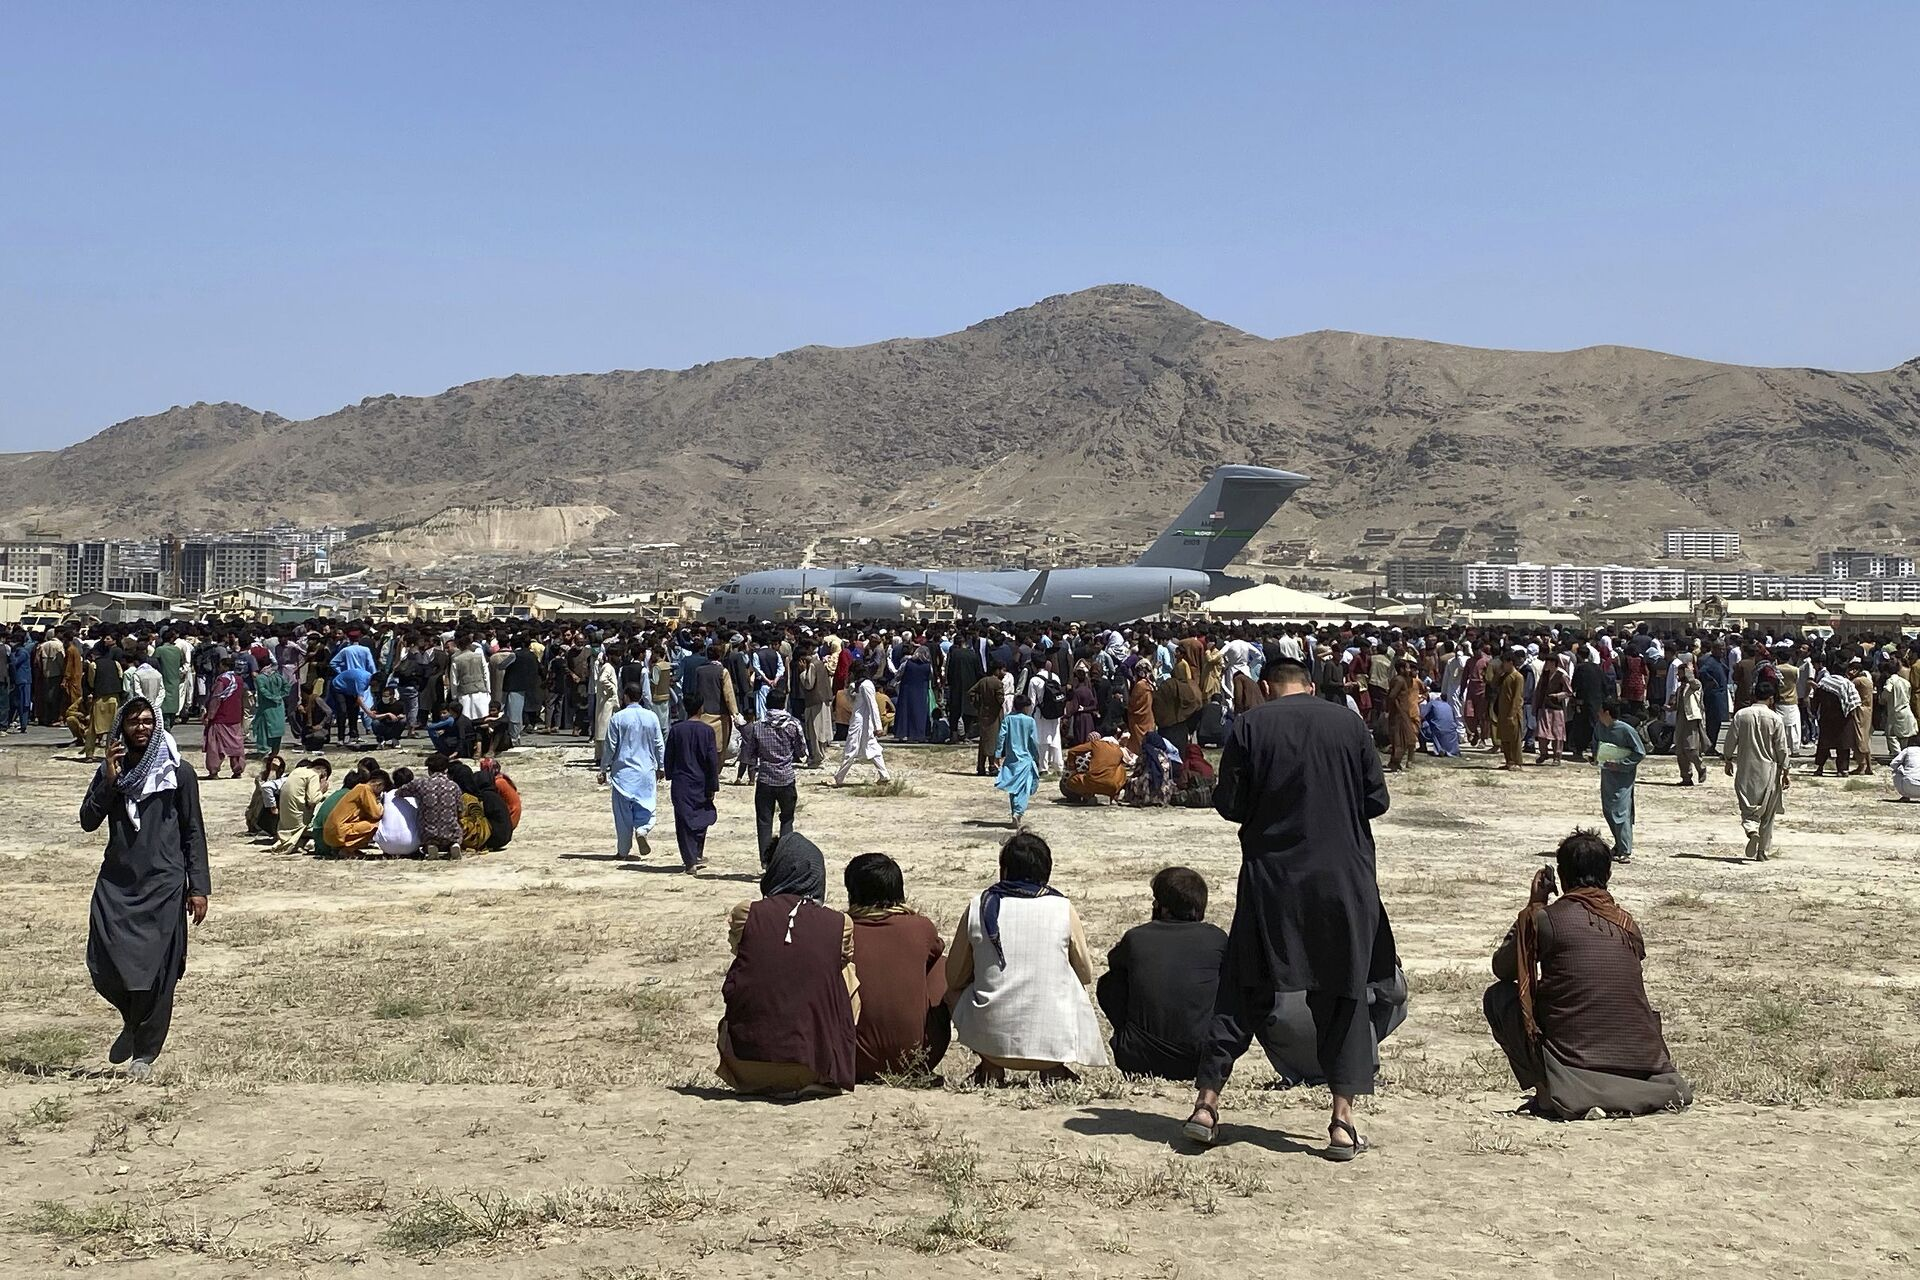 Hundreds of people gather near a U.S. Air Force C-17 transport plane at a perimeter at the international airport in Kabul, Afghanistan, Monday, Aug. 16, 2021 - Sputnik International, 1920, 07.09.2021